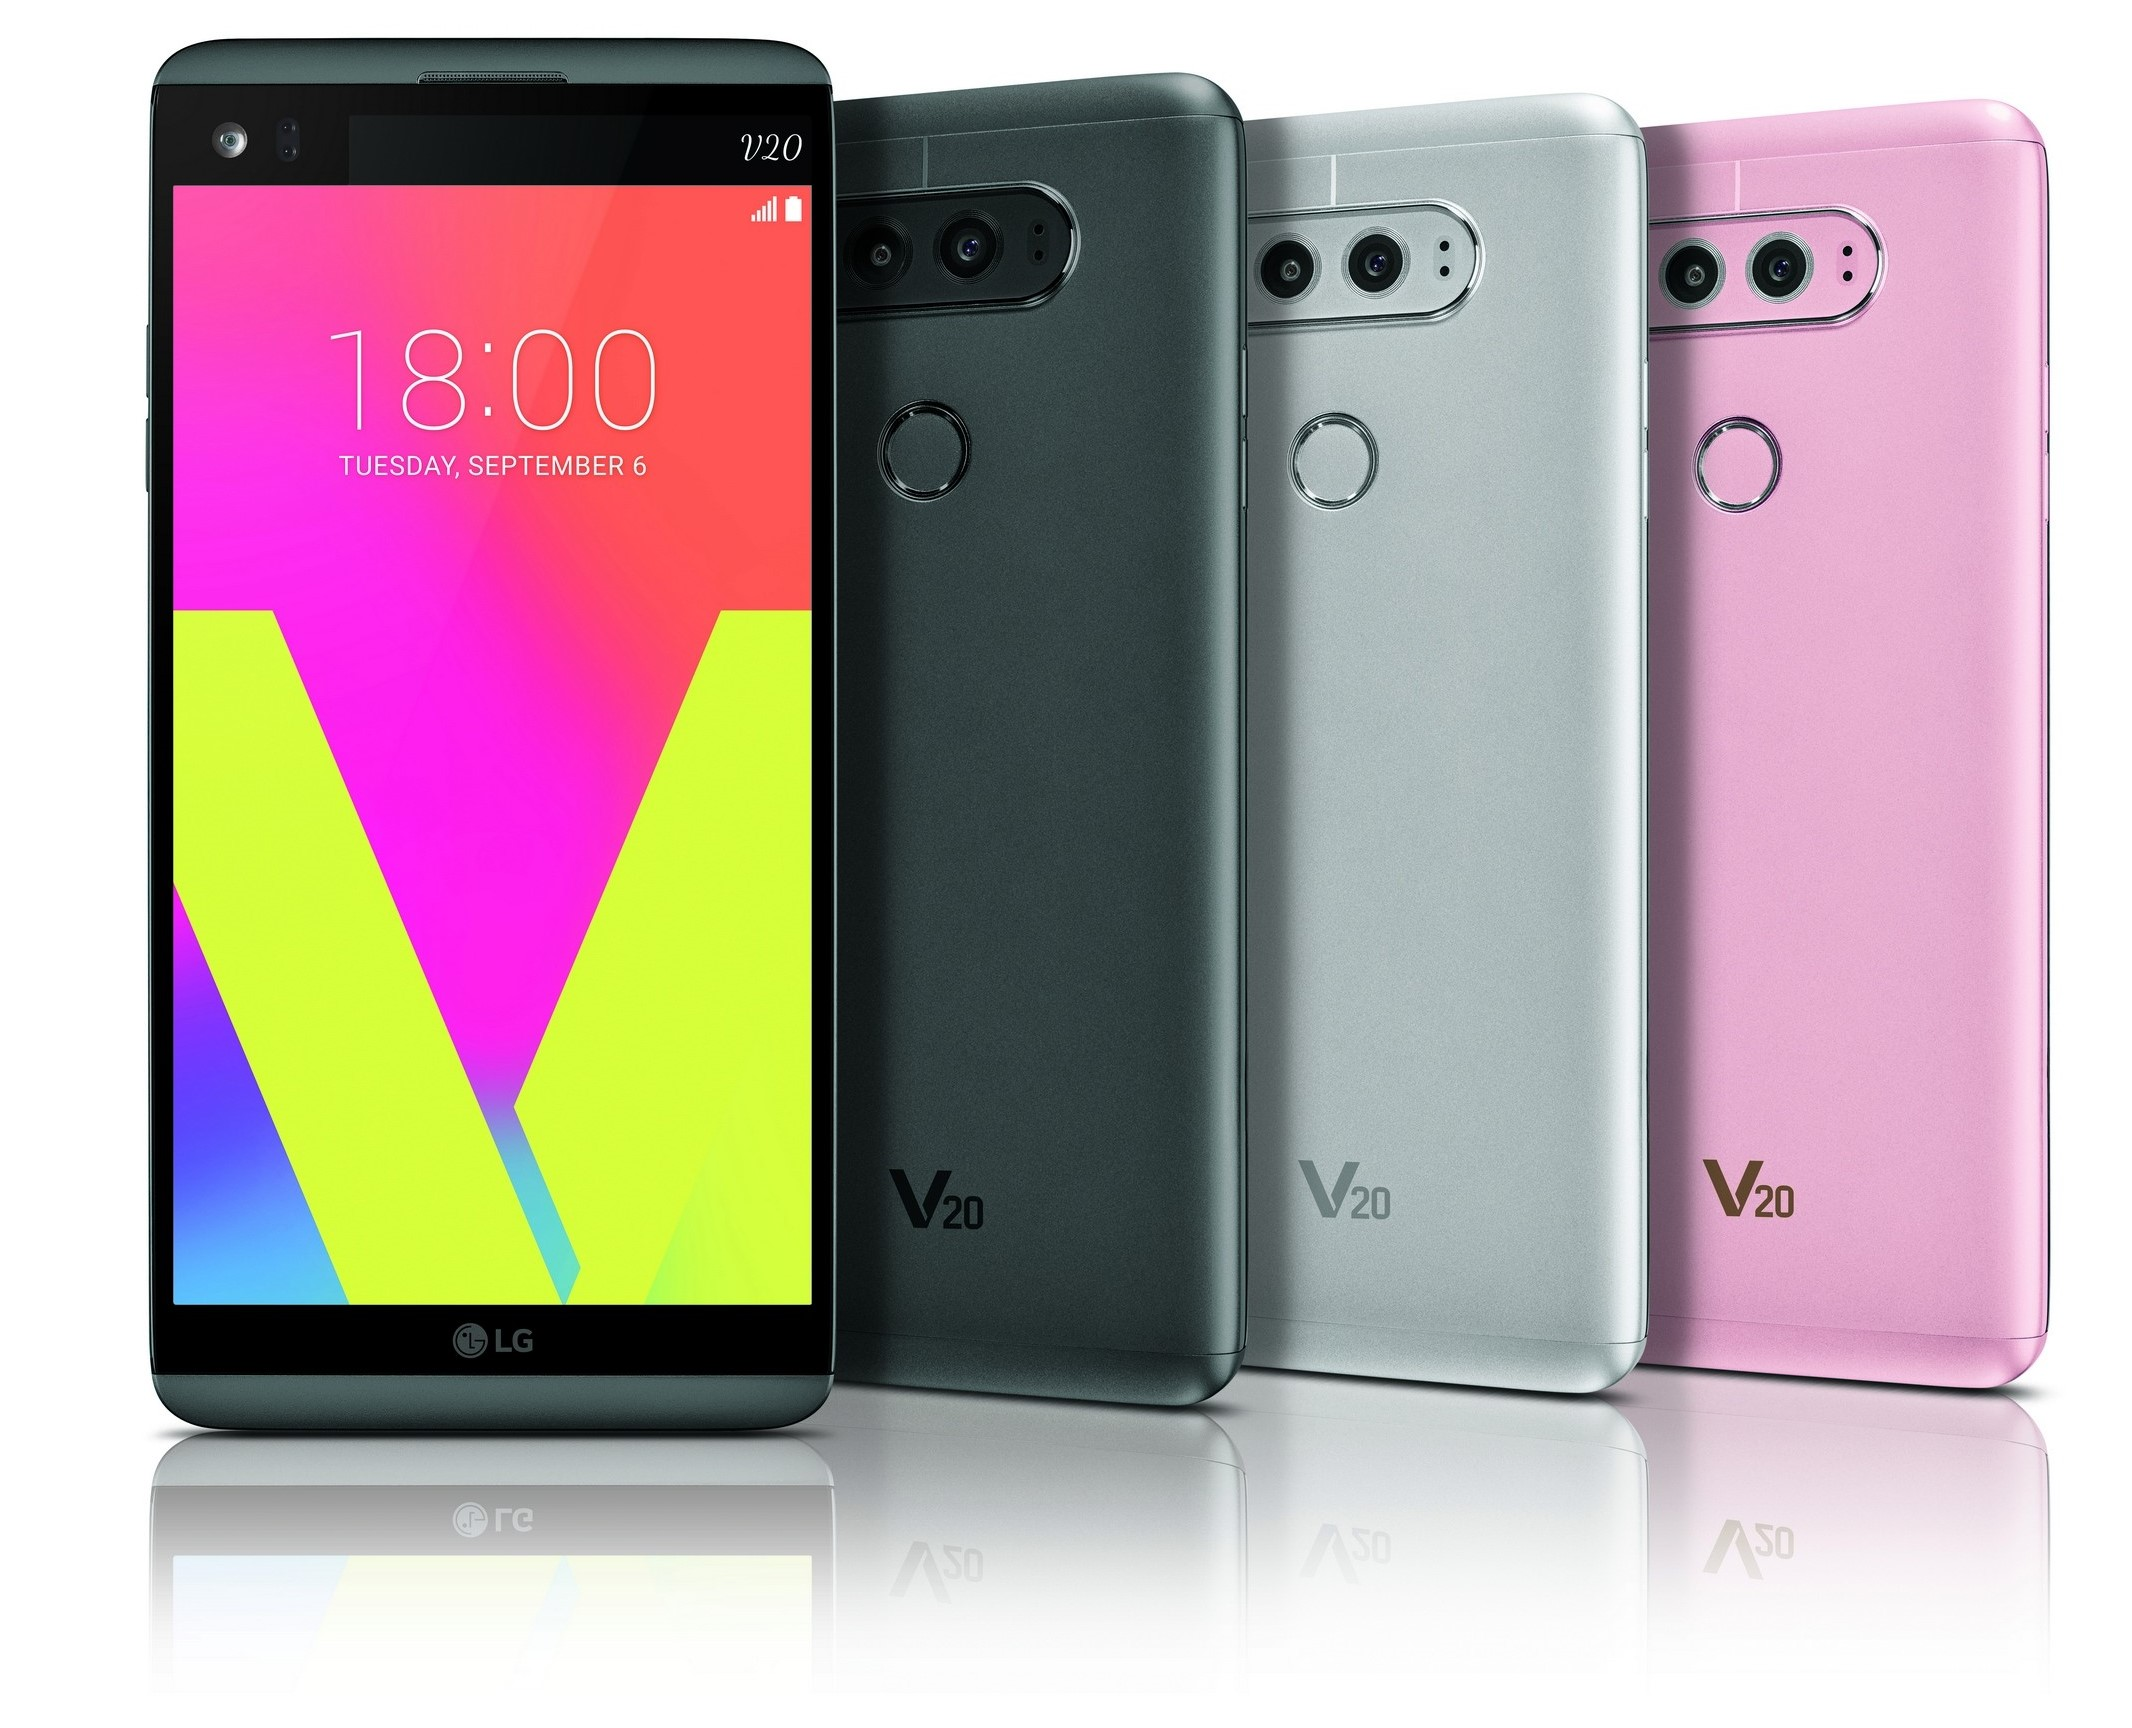 Here are the LG V20 colors